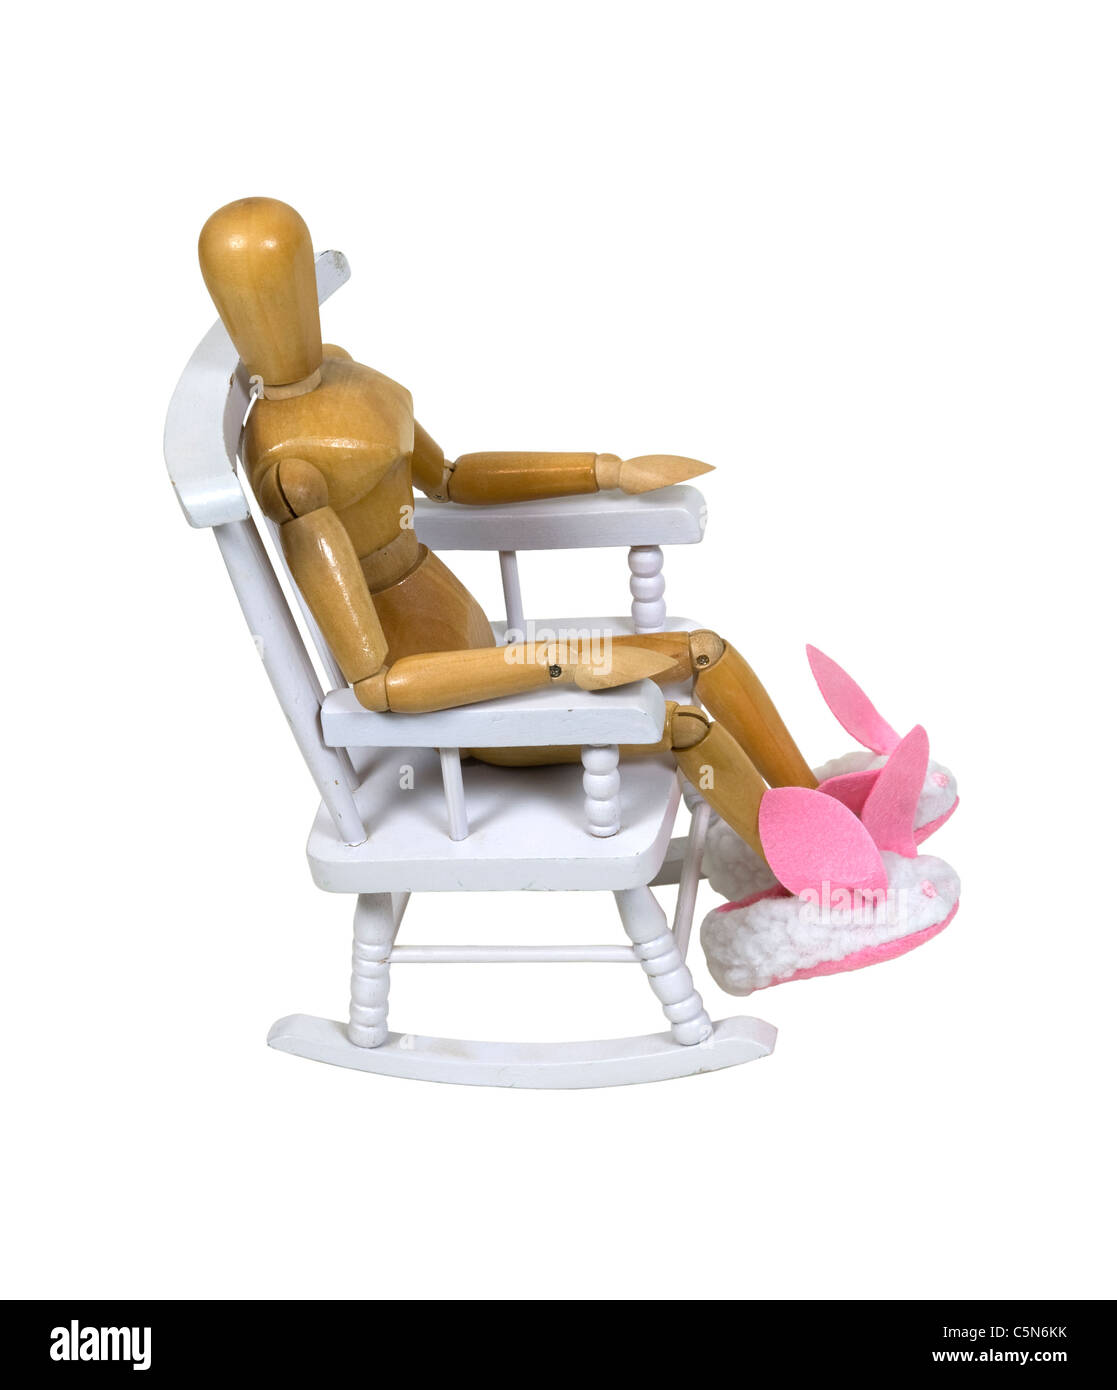 Relaxing in a rocking chair wearing fuzzy bunny slippers with large pink ears and nose - path included - Stock Image